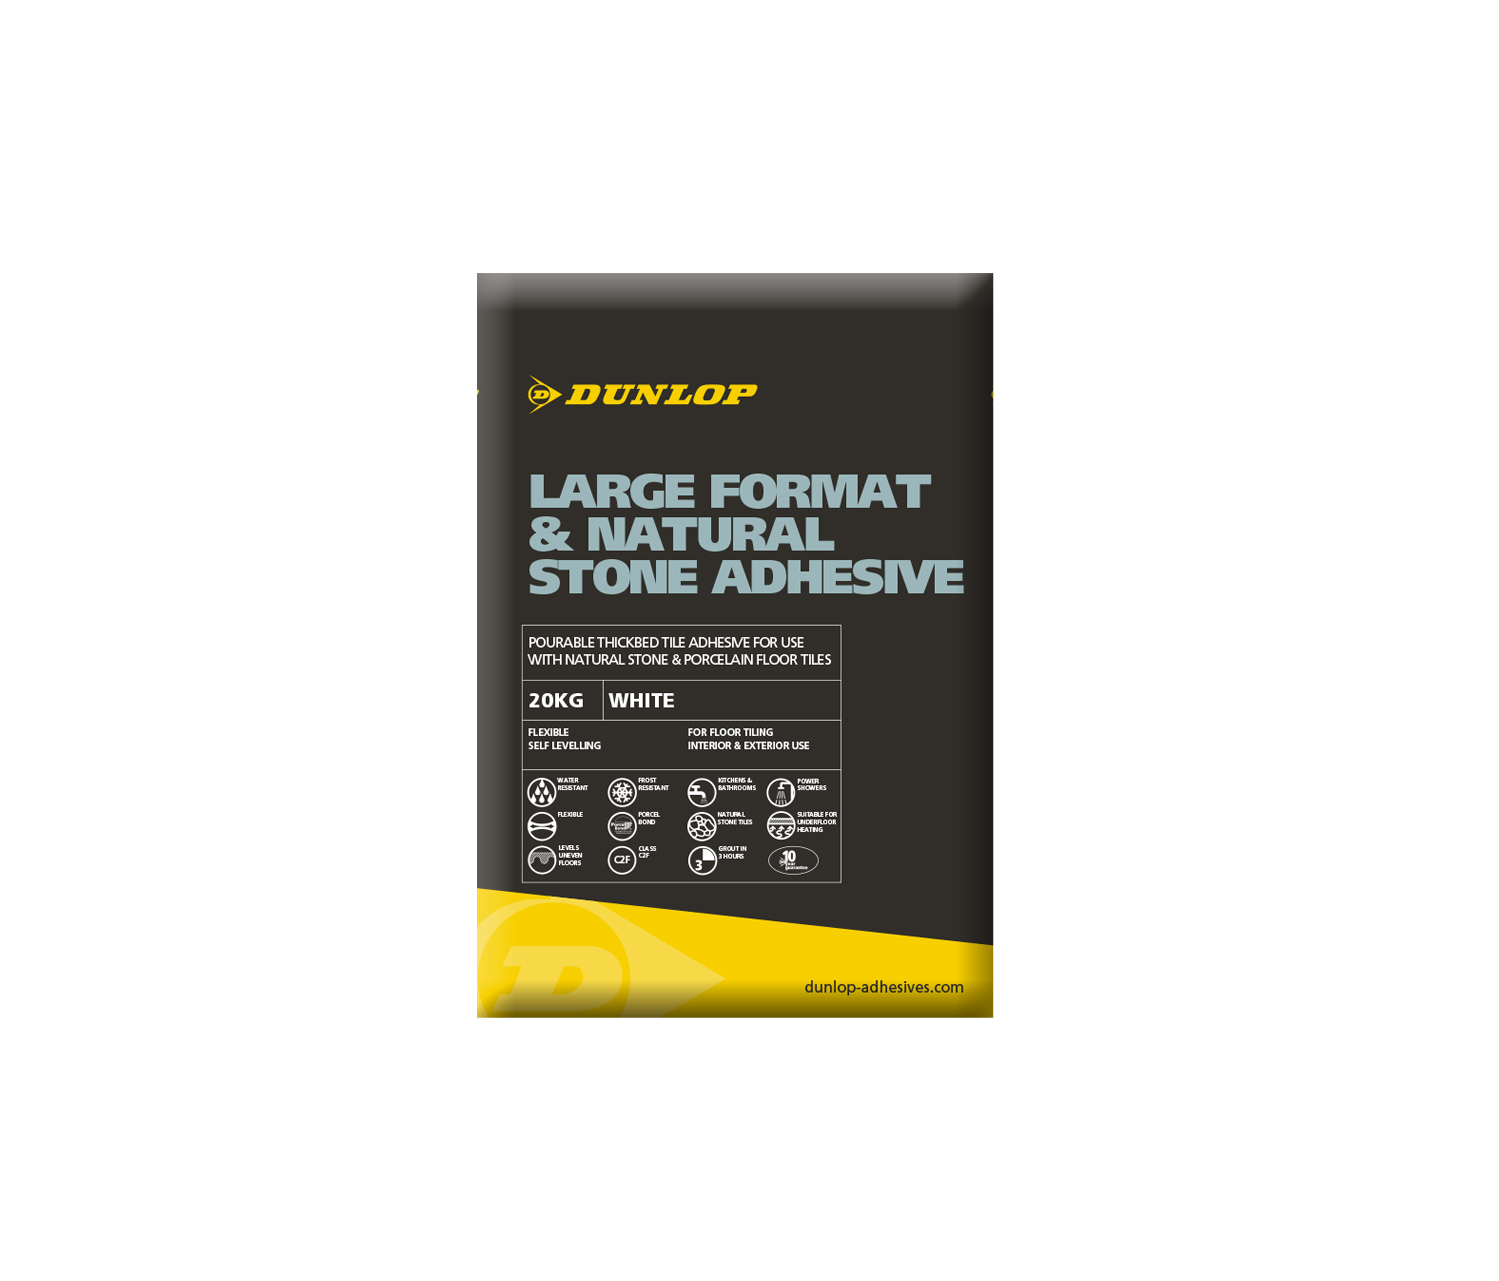 Dunlop is recommending that builders' merchants stock up their shelves with its multi-purpose adhesive.